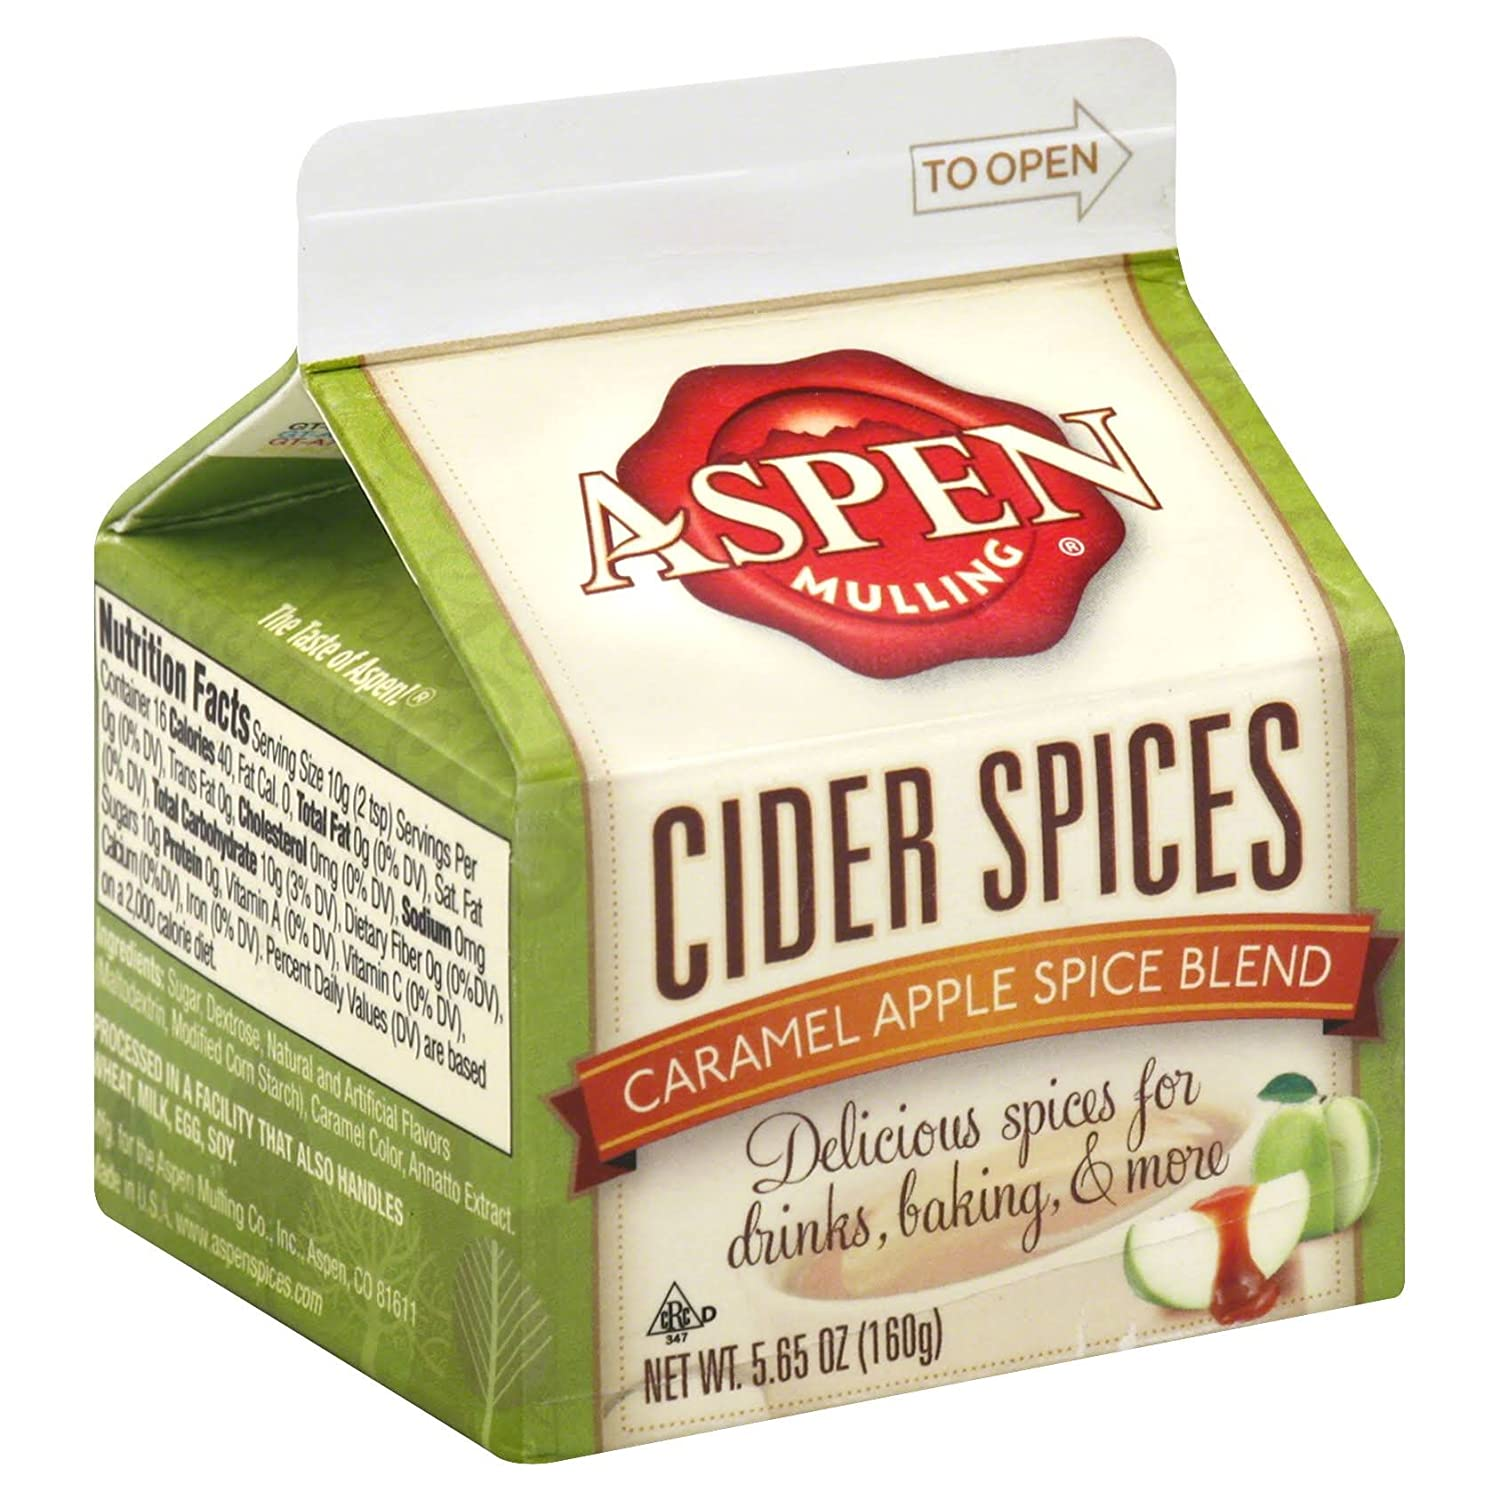 Aspen Mulling Cider Spices, Caramel Apple Blend, 5.65-Ounce Cartons (Pack of 9)